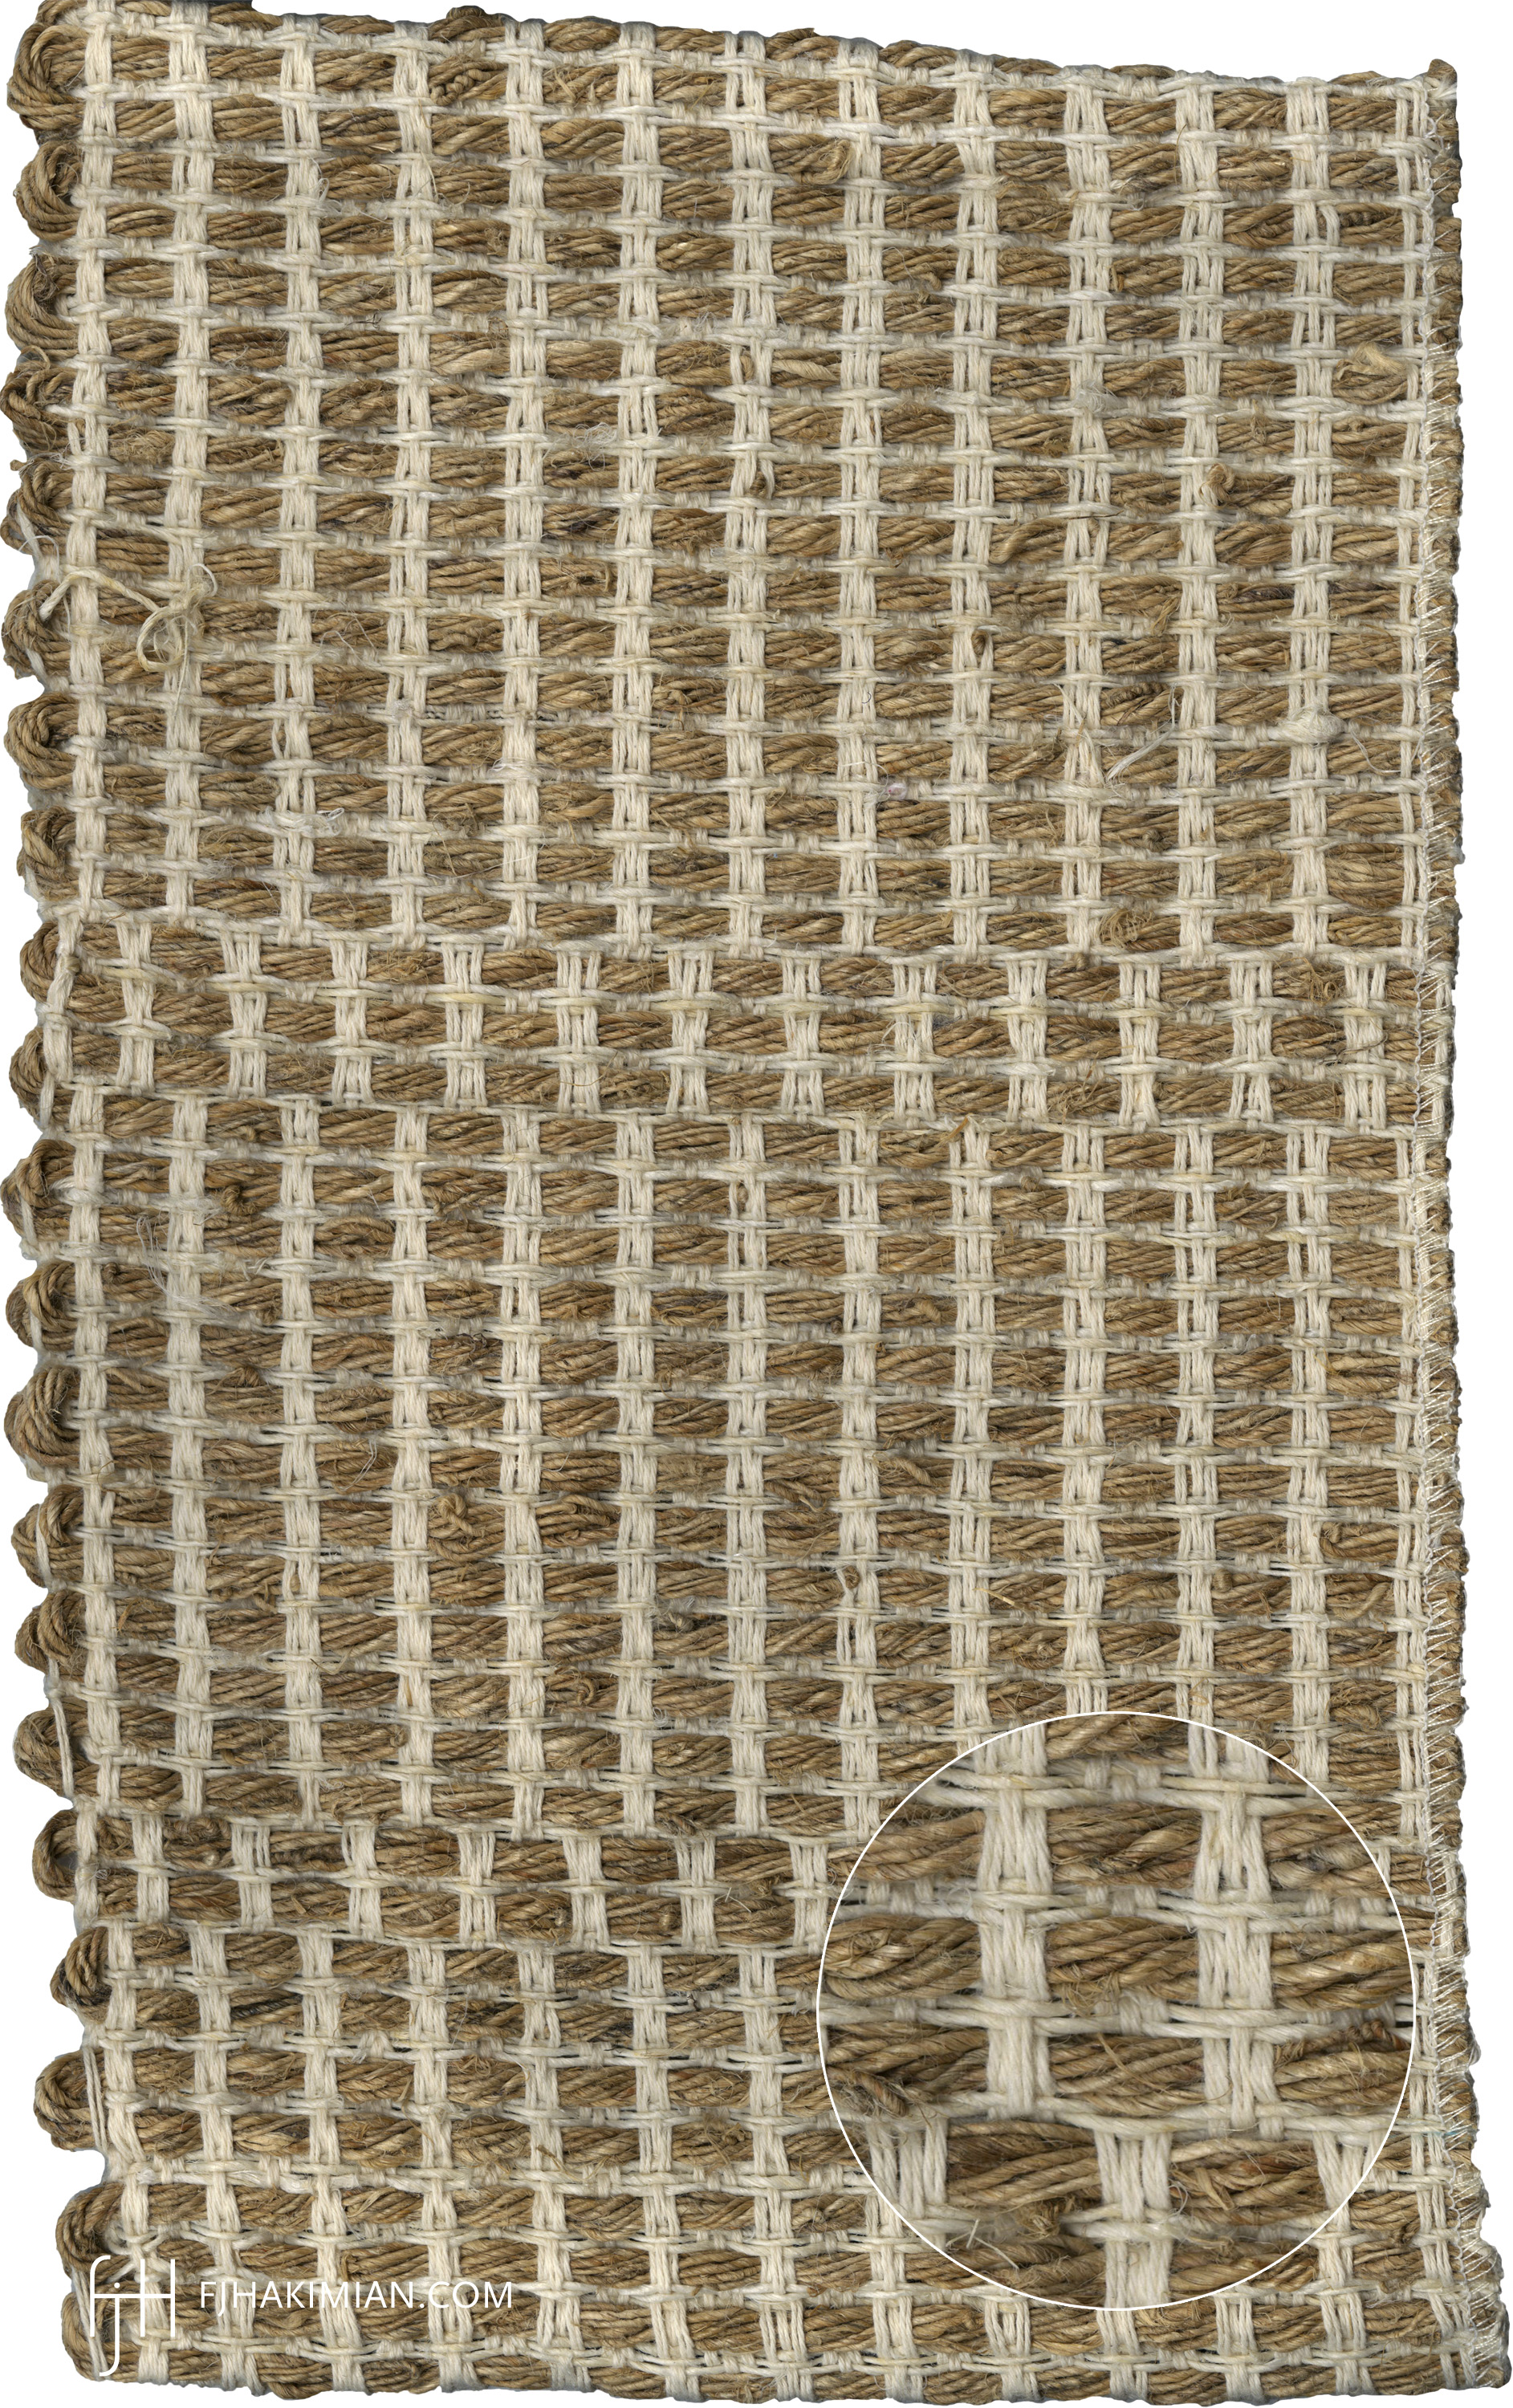 IF-Sardinian-Cotton-Bleached Hemp-Nettle-Mat Sample1- FJ Hakimian